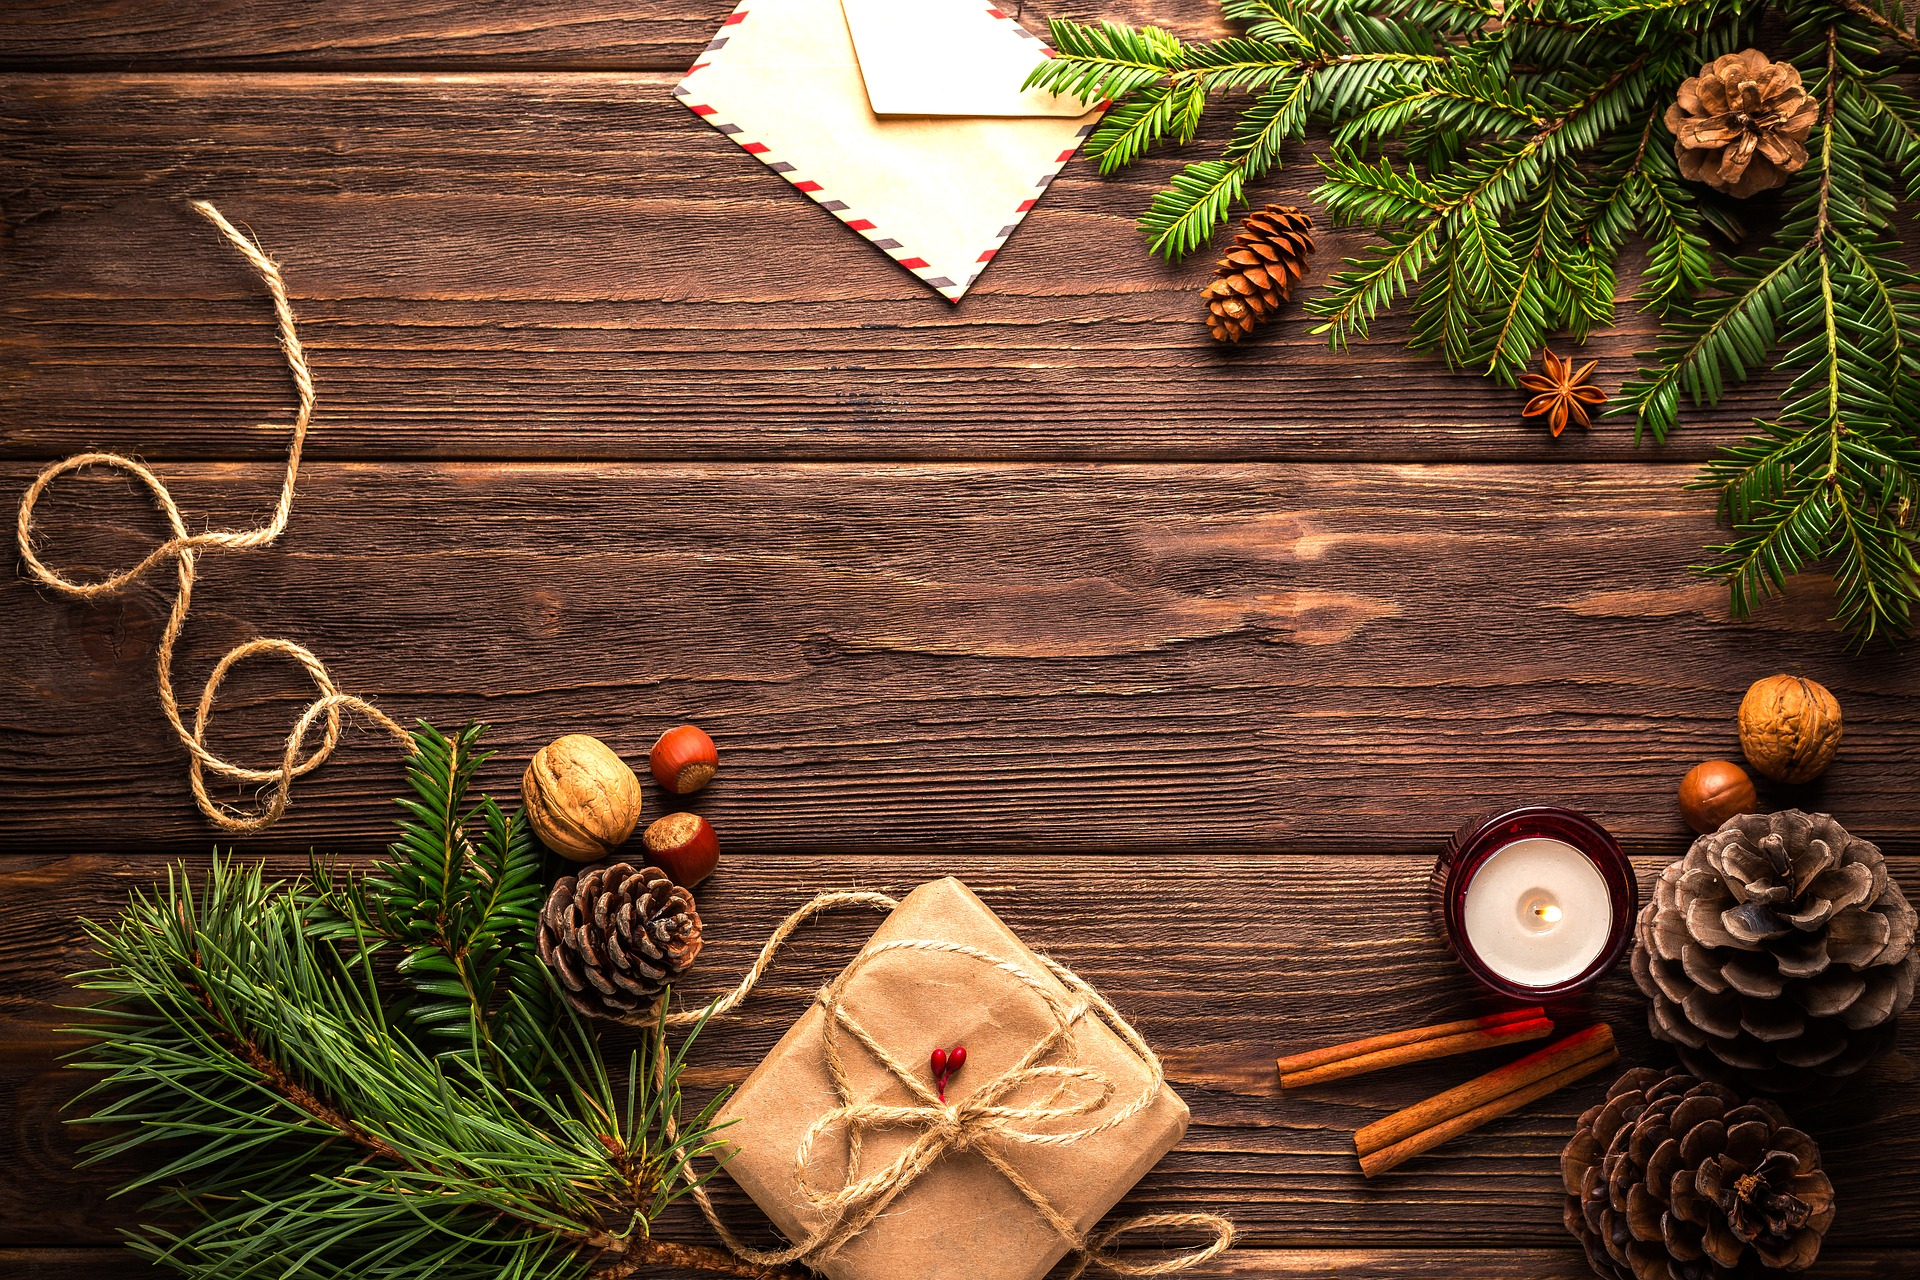 How To Navigate The Holidays While In Debt